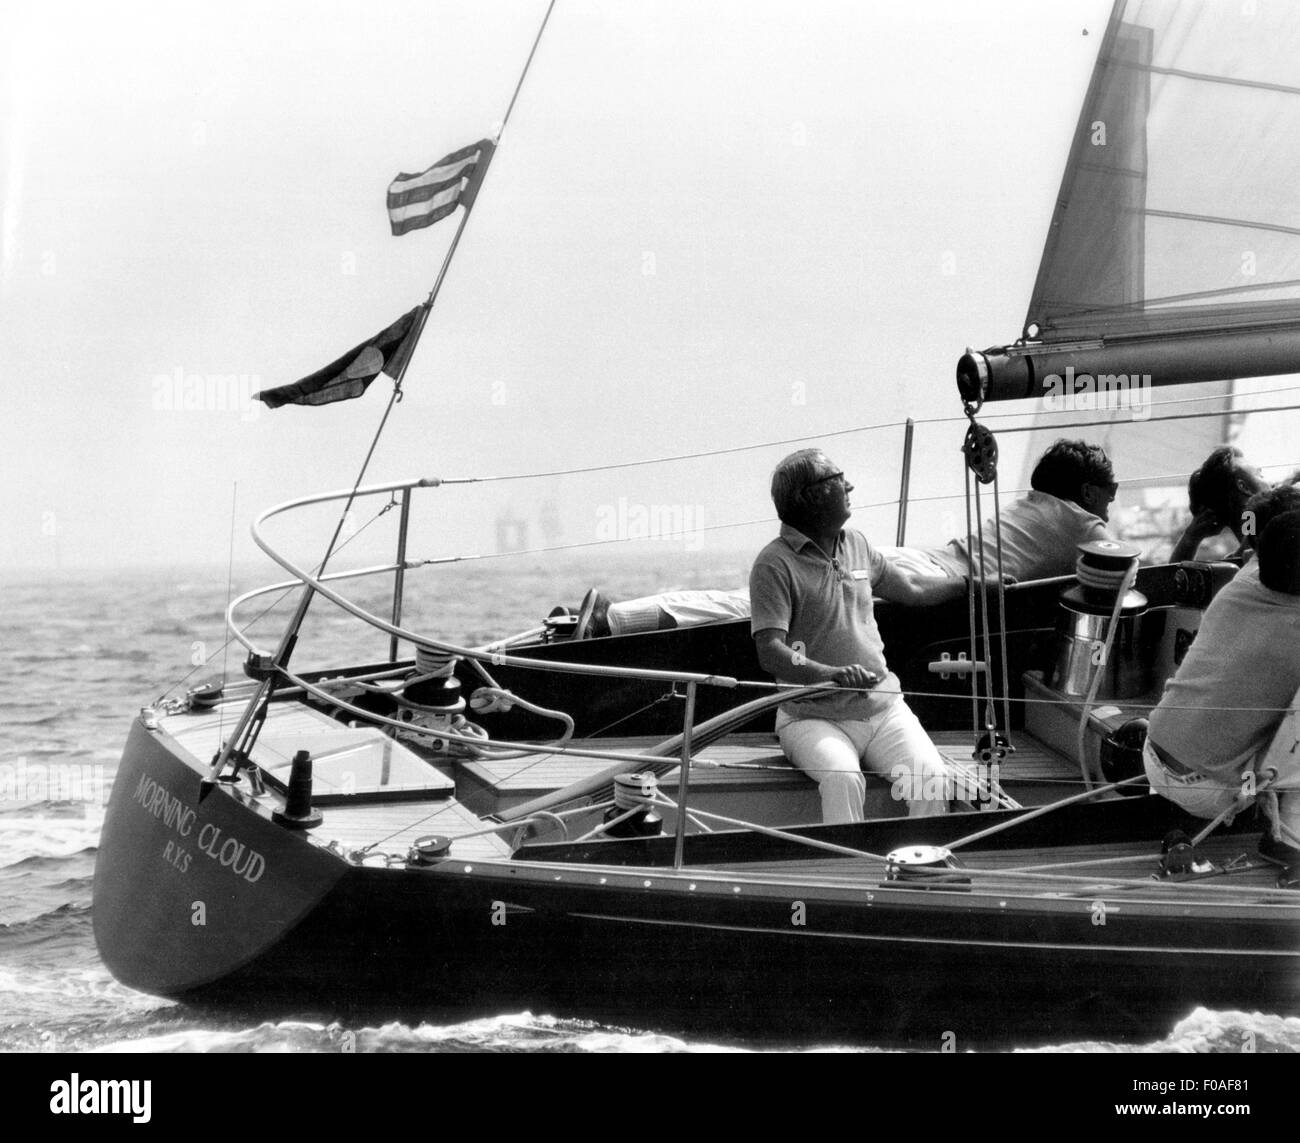 AJAXNETPHOTO - 1971. SOUTHSEA, ENGLAND. - CHANNEL RACE - TED HEATH AT THE HELM OF HIS YACHT MORNING CLOUD II AT - Stock Image